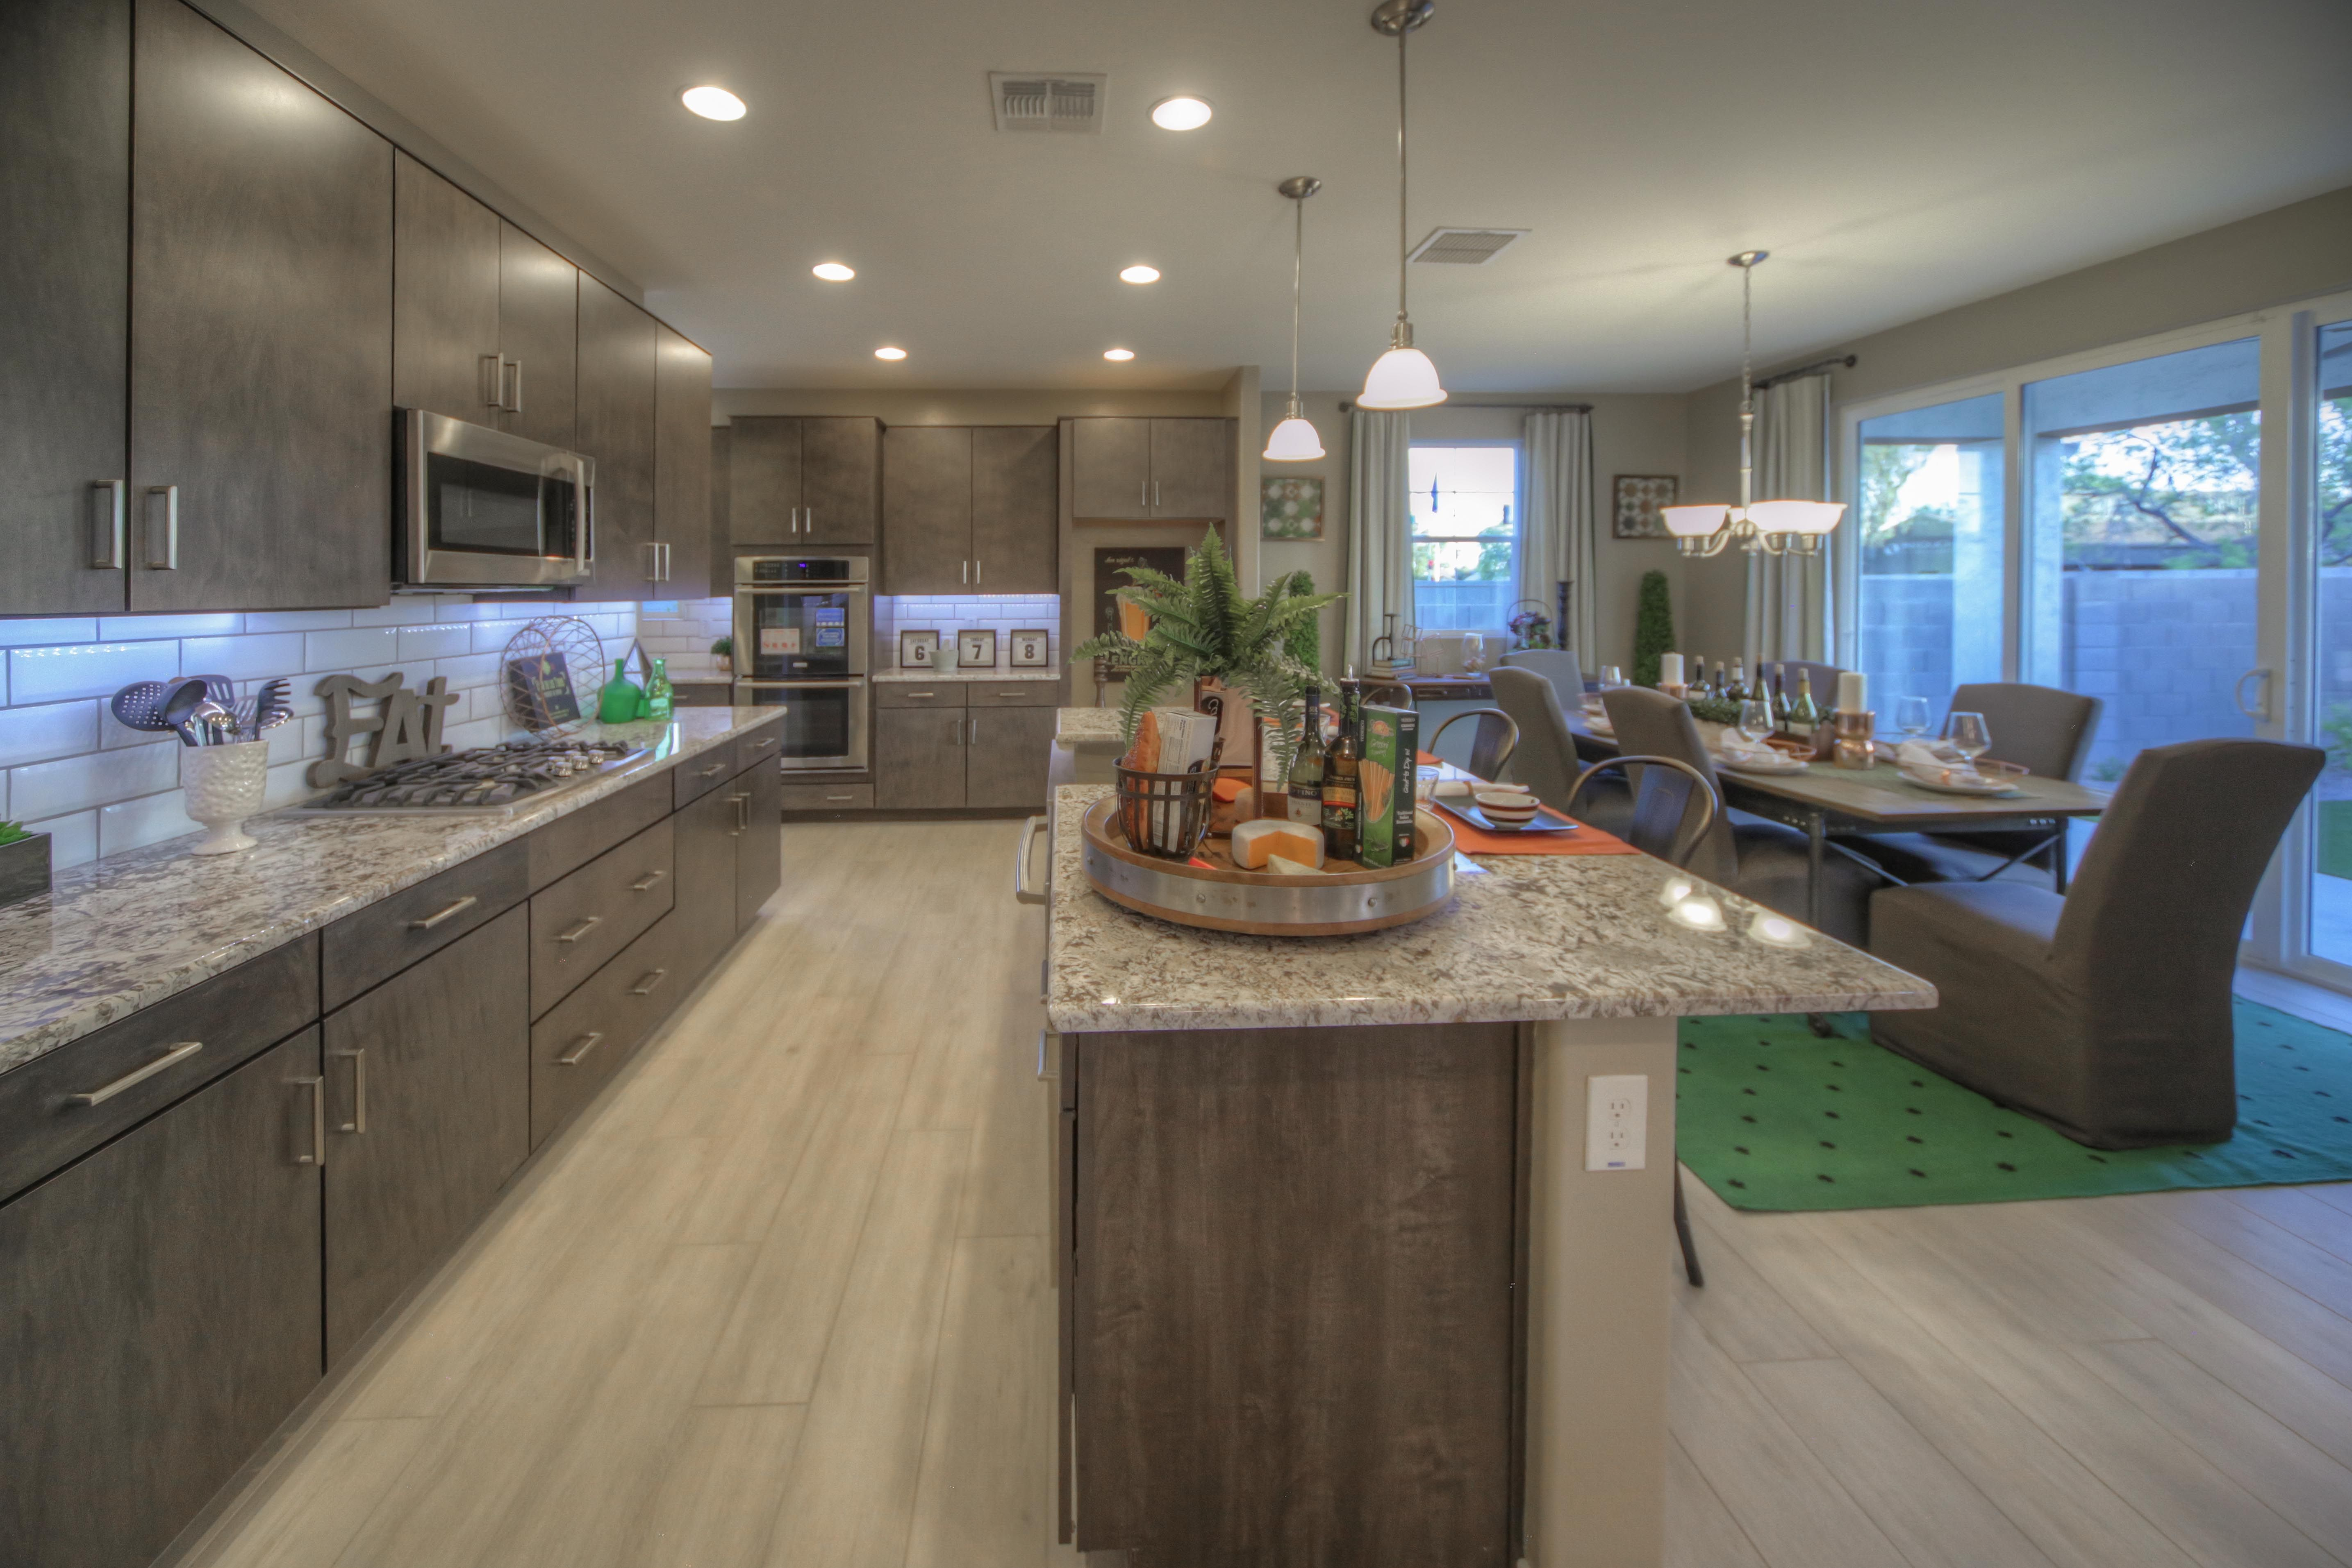 Model Home Designjoan Turner And Kimberly Haag Industrial Gorgeous Kitchen Model Design Decorating Design